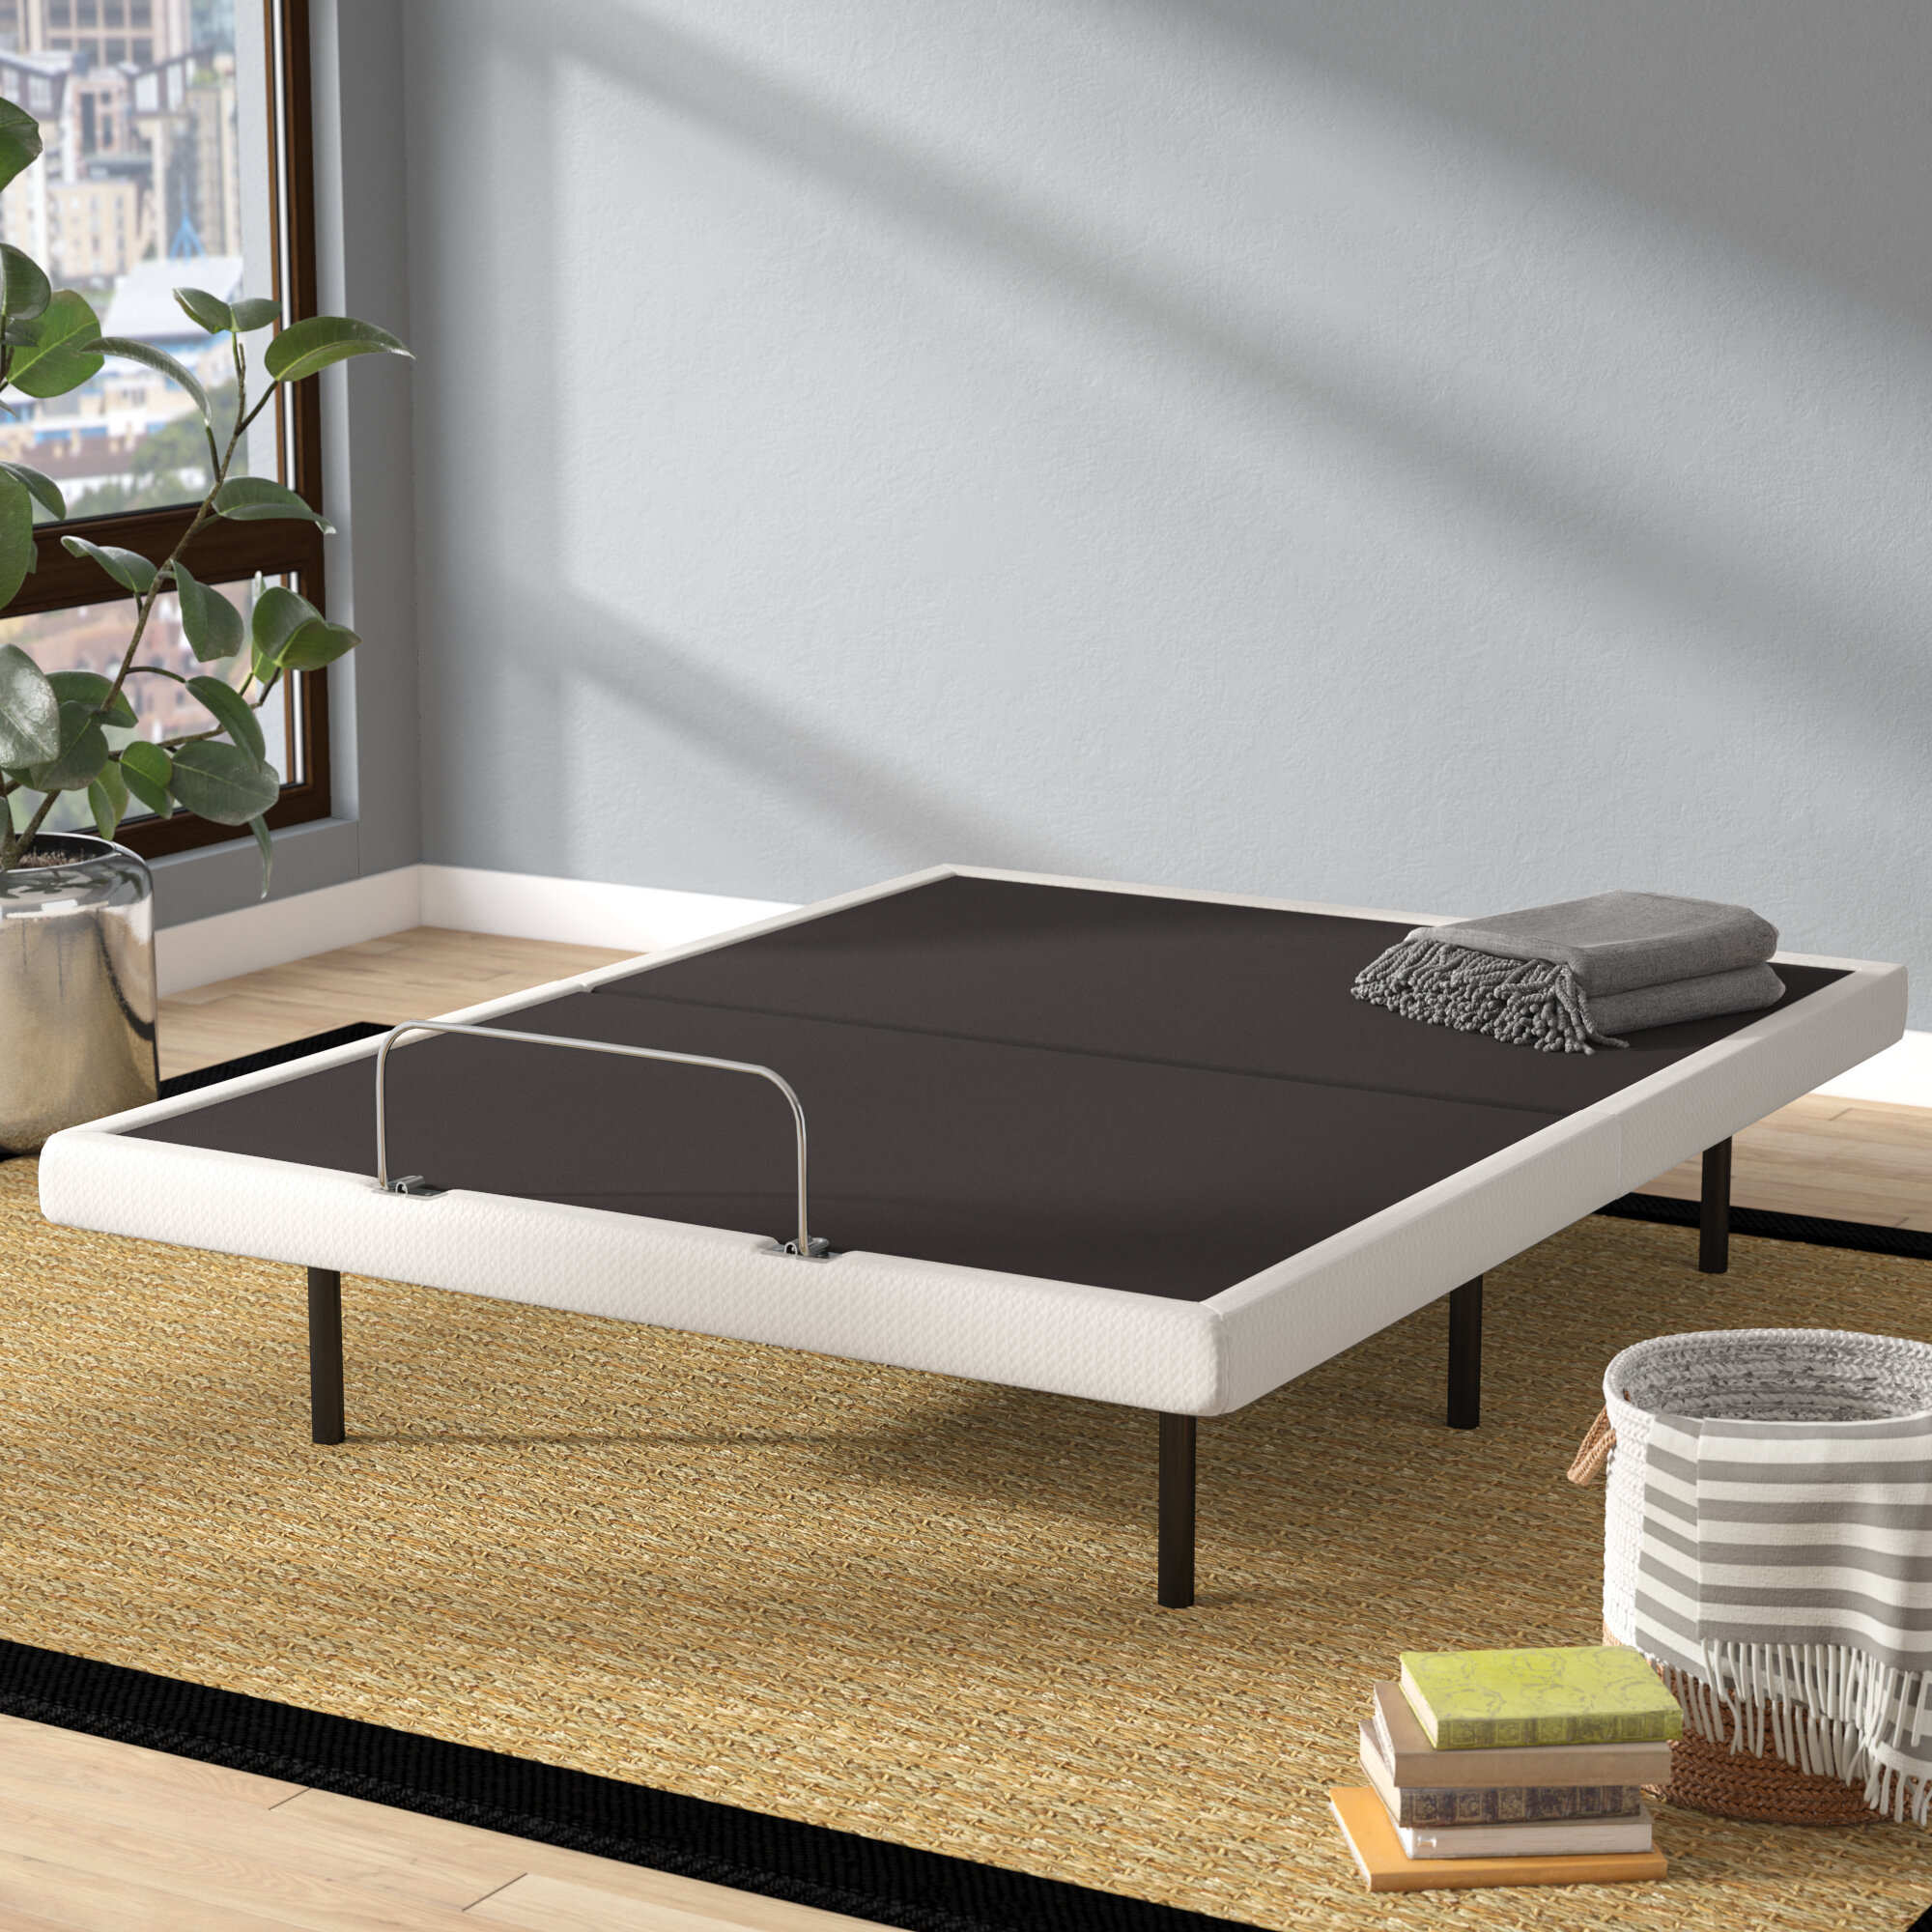 frames crate d designs fabrique lit base plateforme and beds canada bed mattressesfuton mattresses platform product or futon frame natural